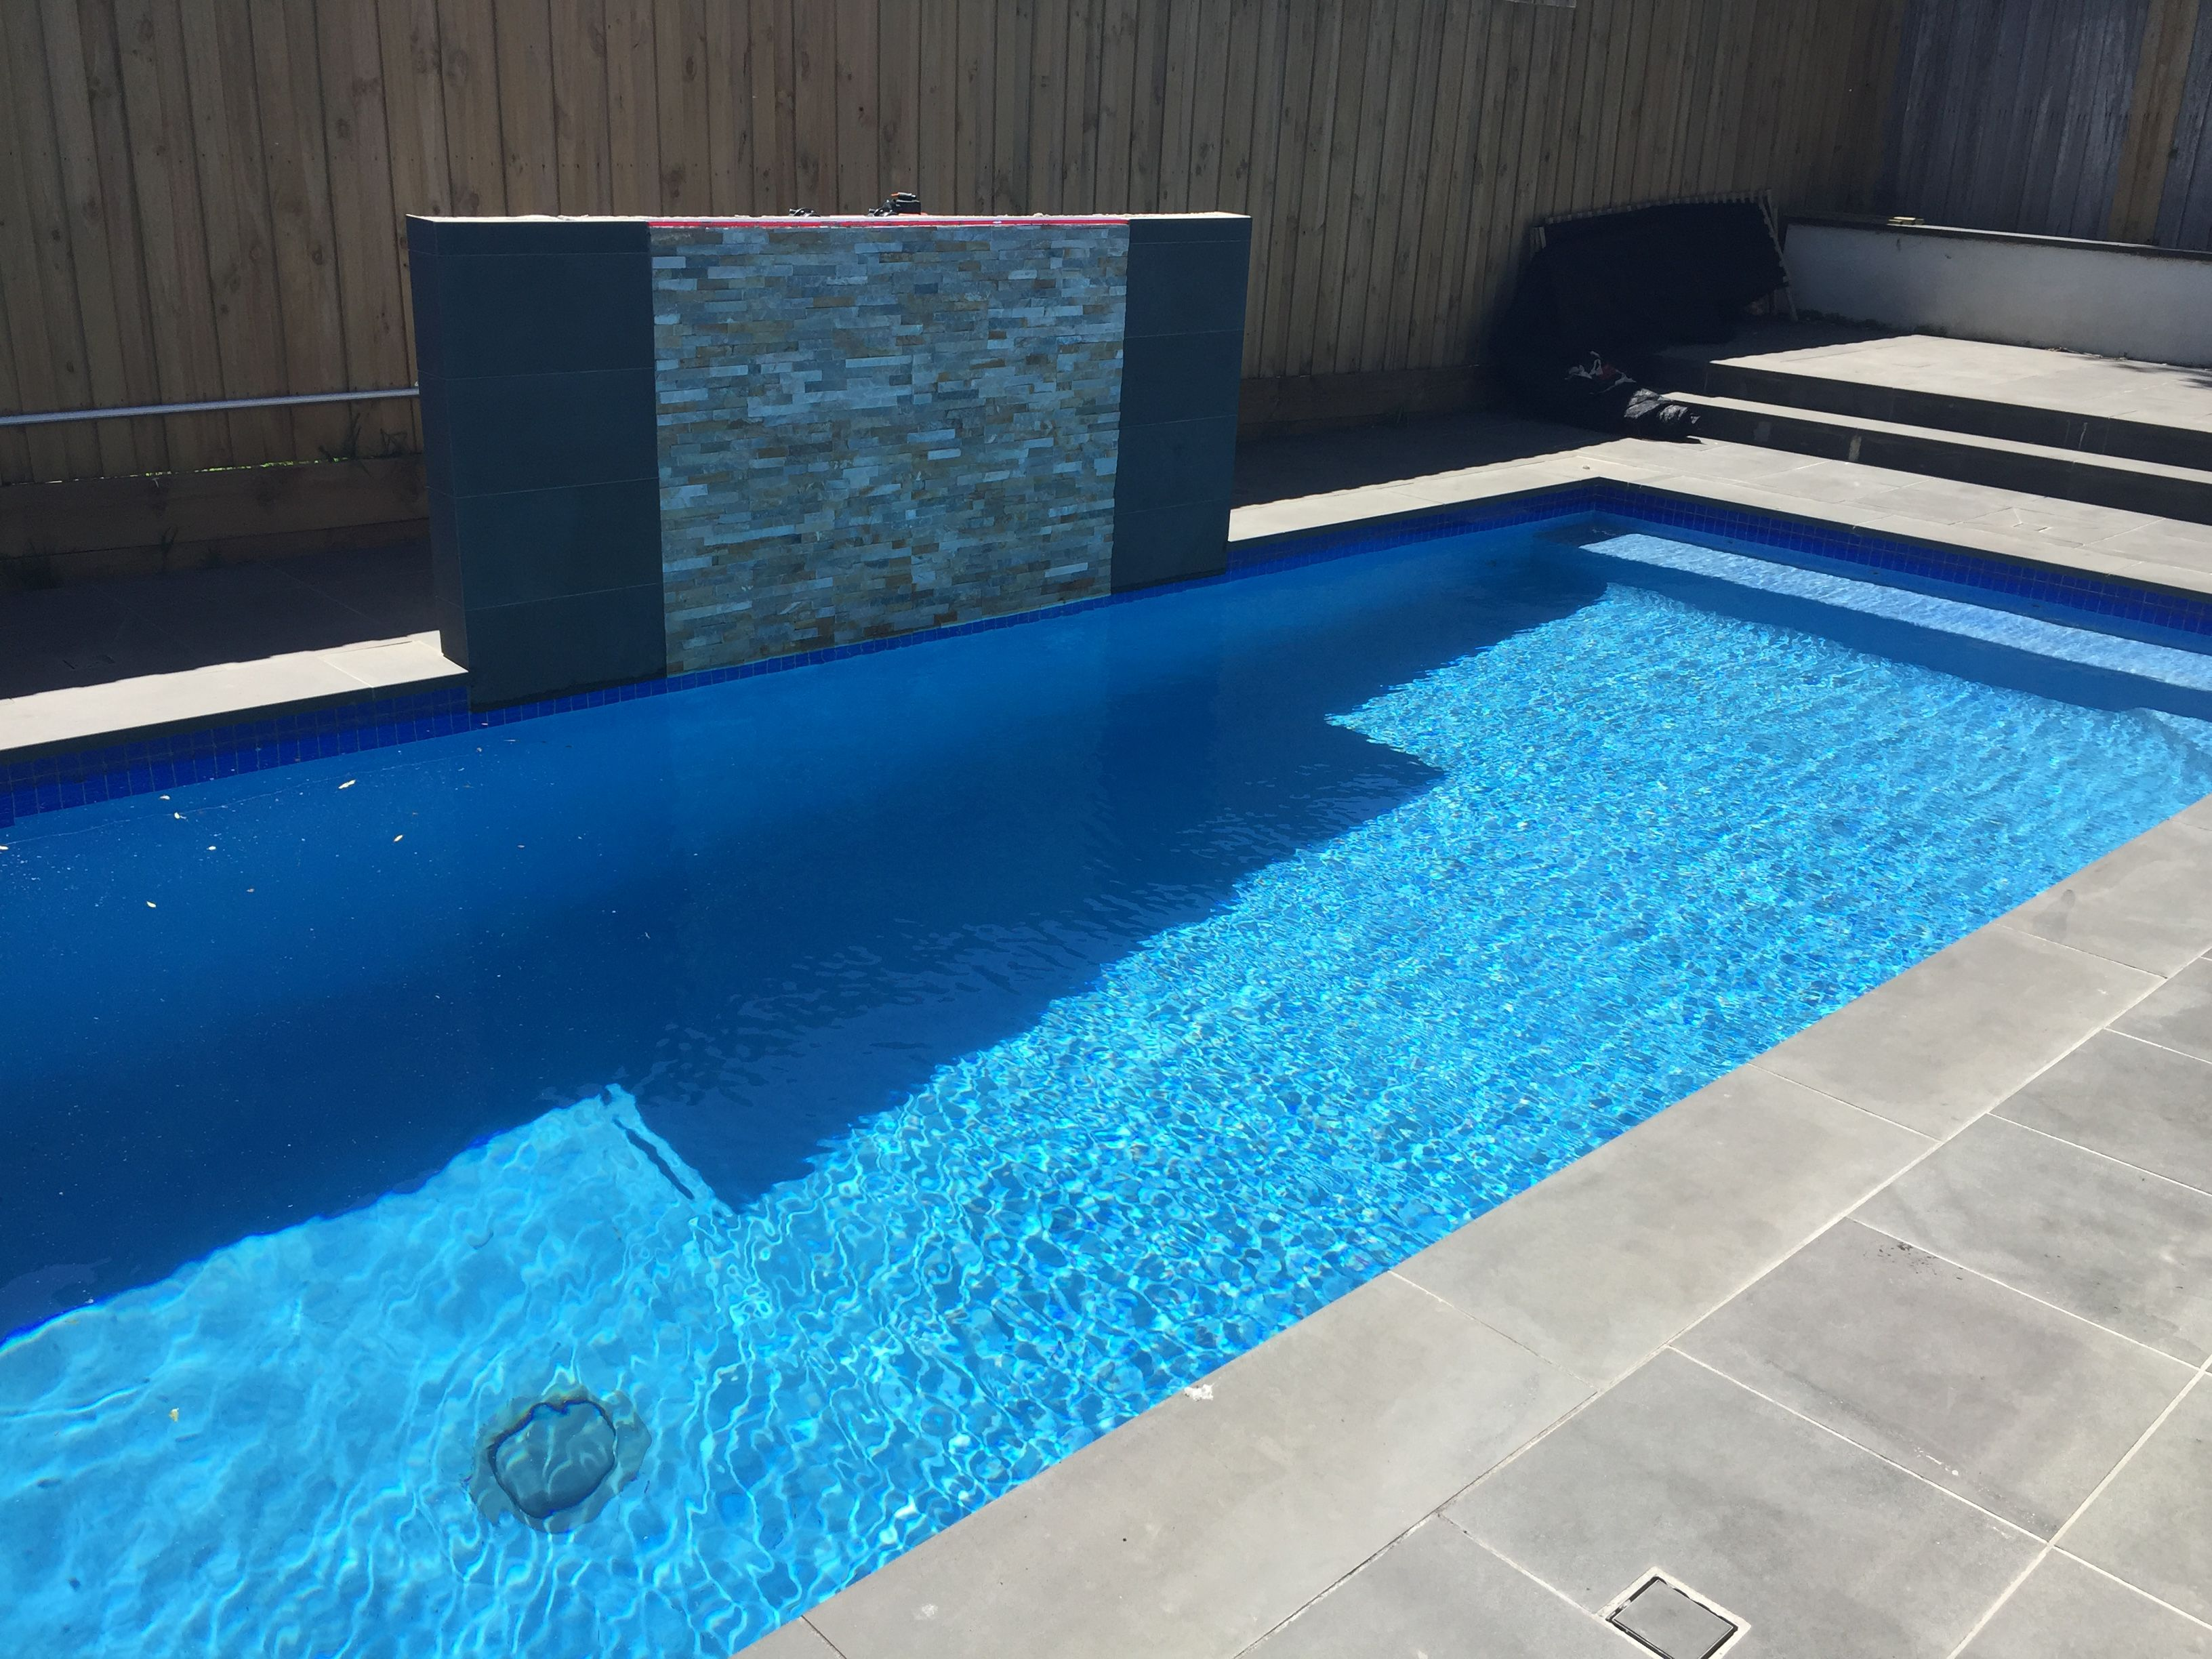 Glass waterline tiles pool with royal blue rendered interior ...